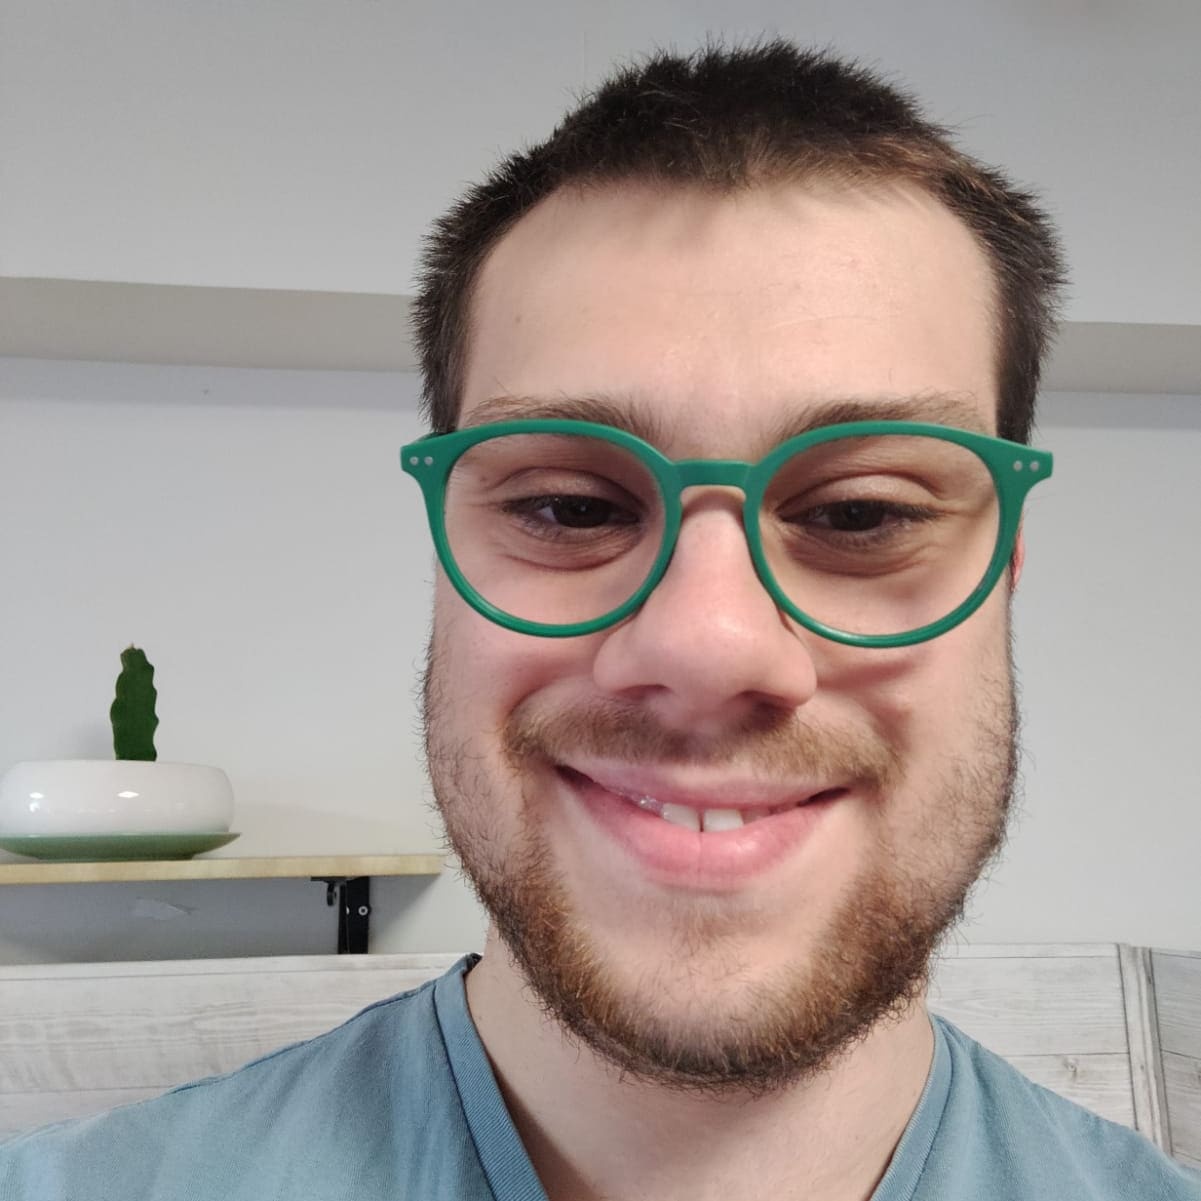 male with green eyeglasses for rainbow glasses collection